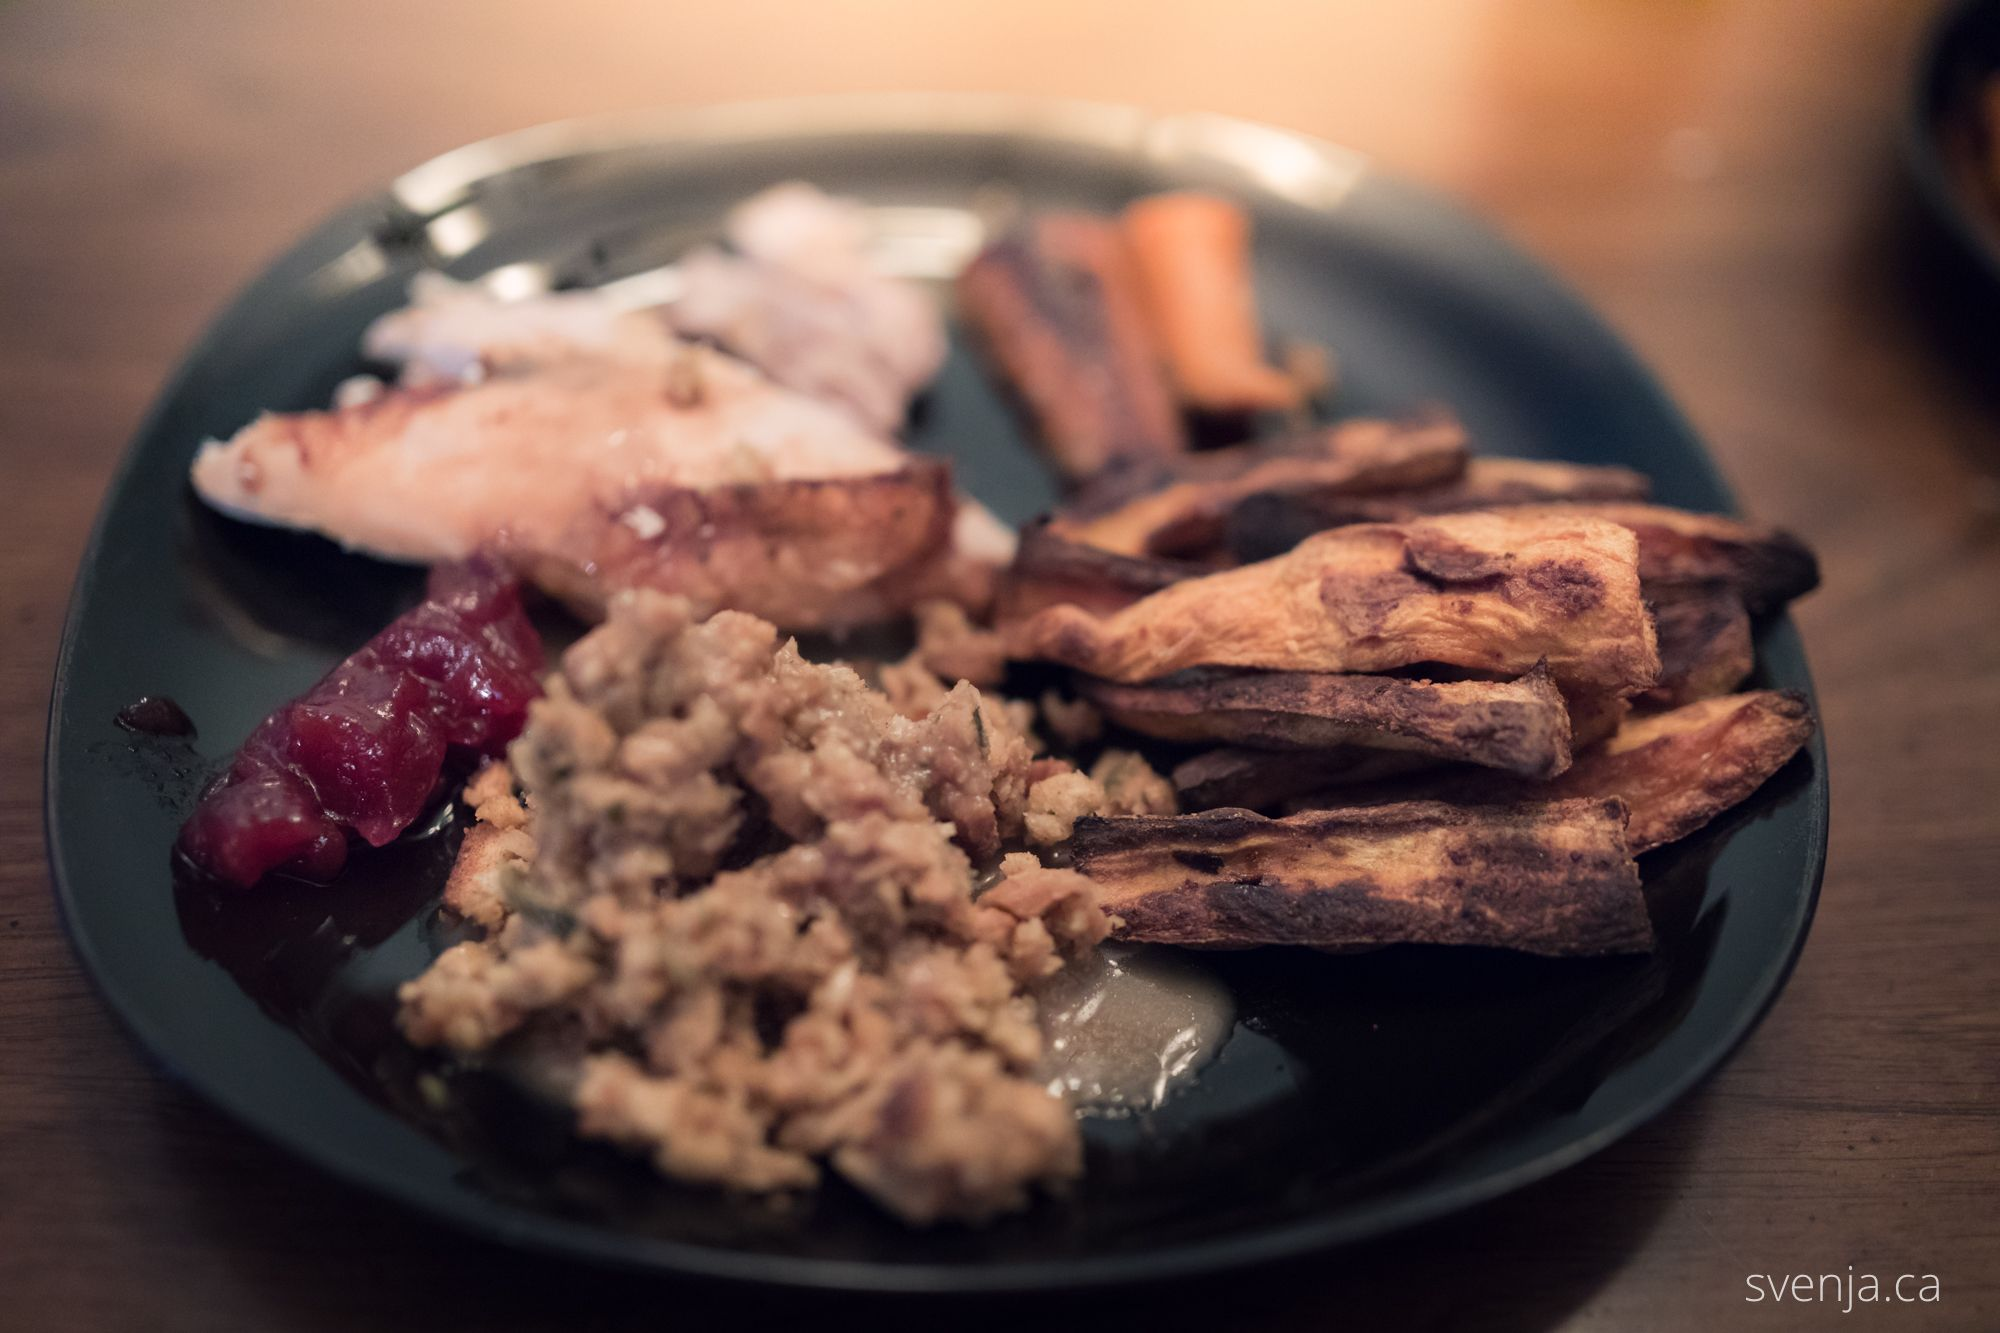 thanksgiving plate filled with turkey, carrots, sweet potatoes, stuffing, and cranberry sauce